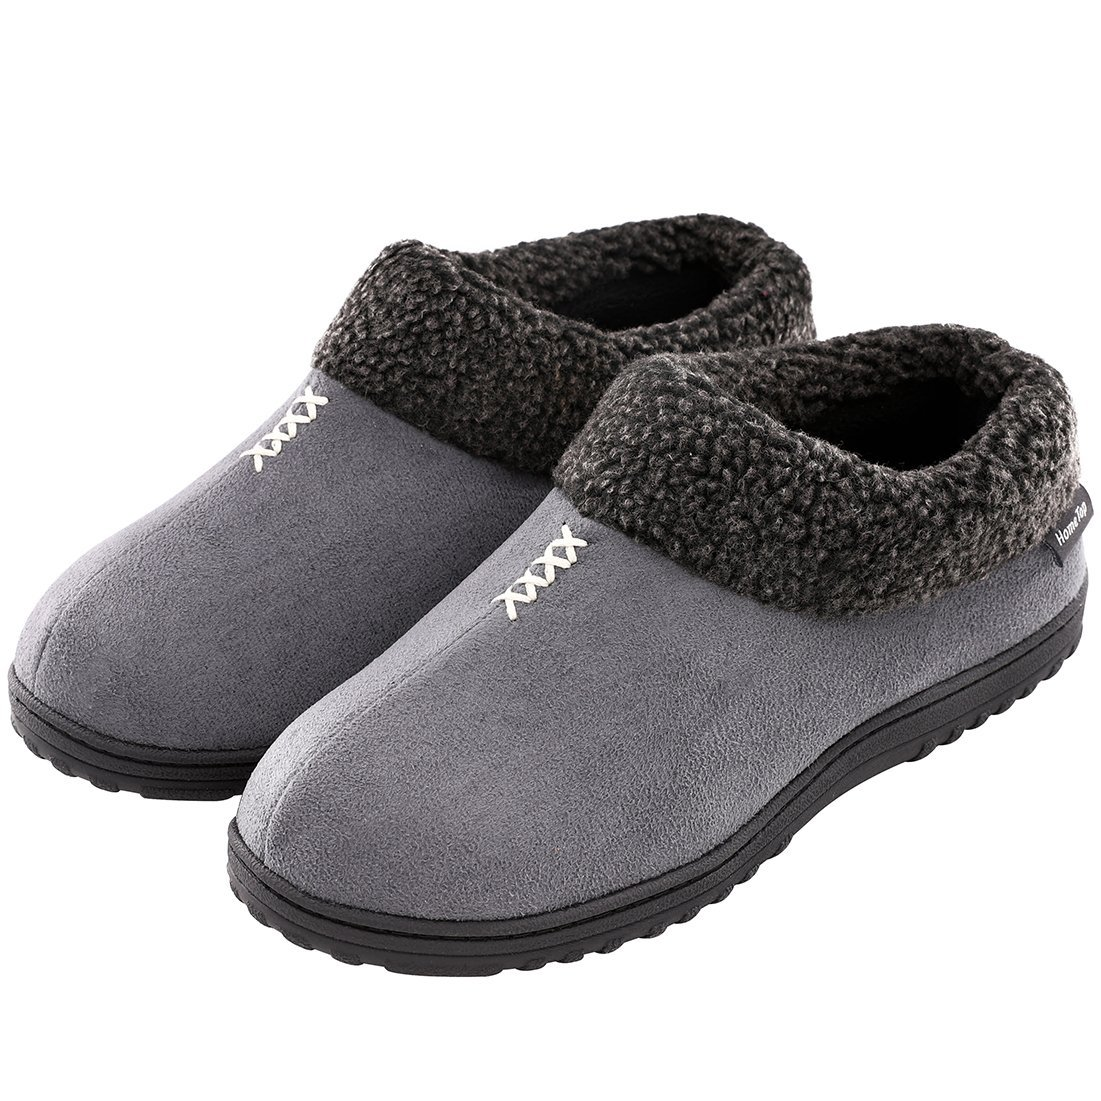 ed7dd4ab5b5339 Men s Cozy Memory Foam Slippers Fluffy Micro Suede Faux Fur Fleece Lined  House Shoes with Non